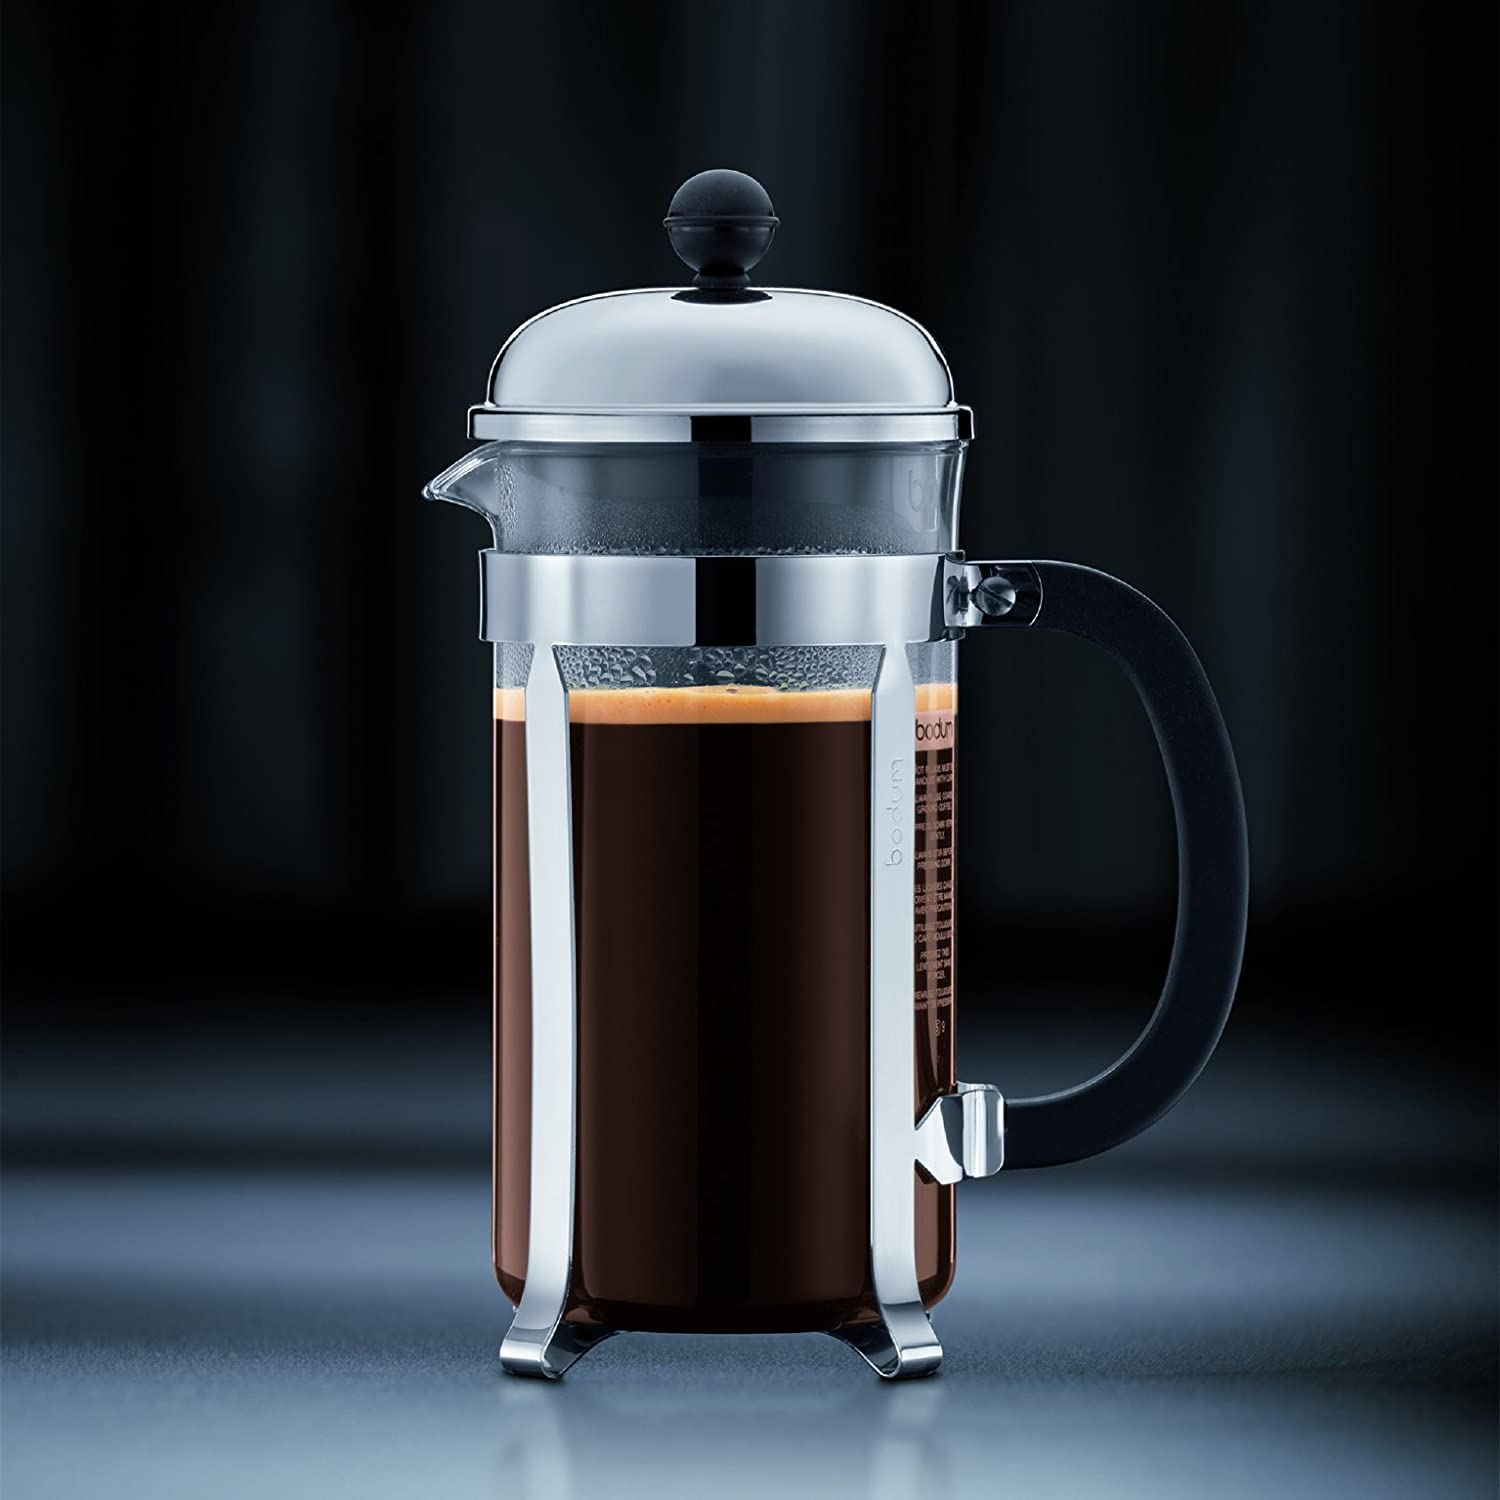 French Press Coffee Maker Images : How to keep French press coffee hot longer? Fly the World